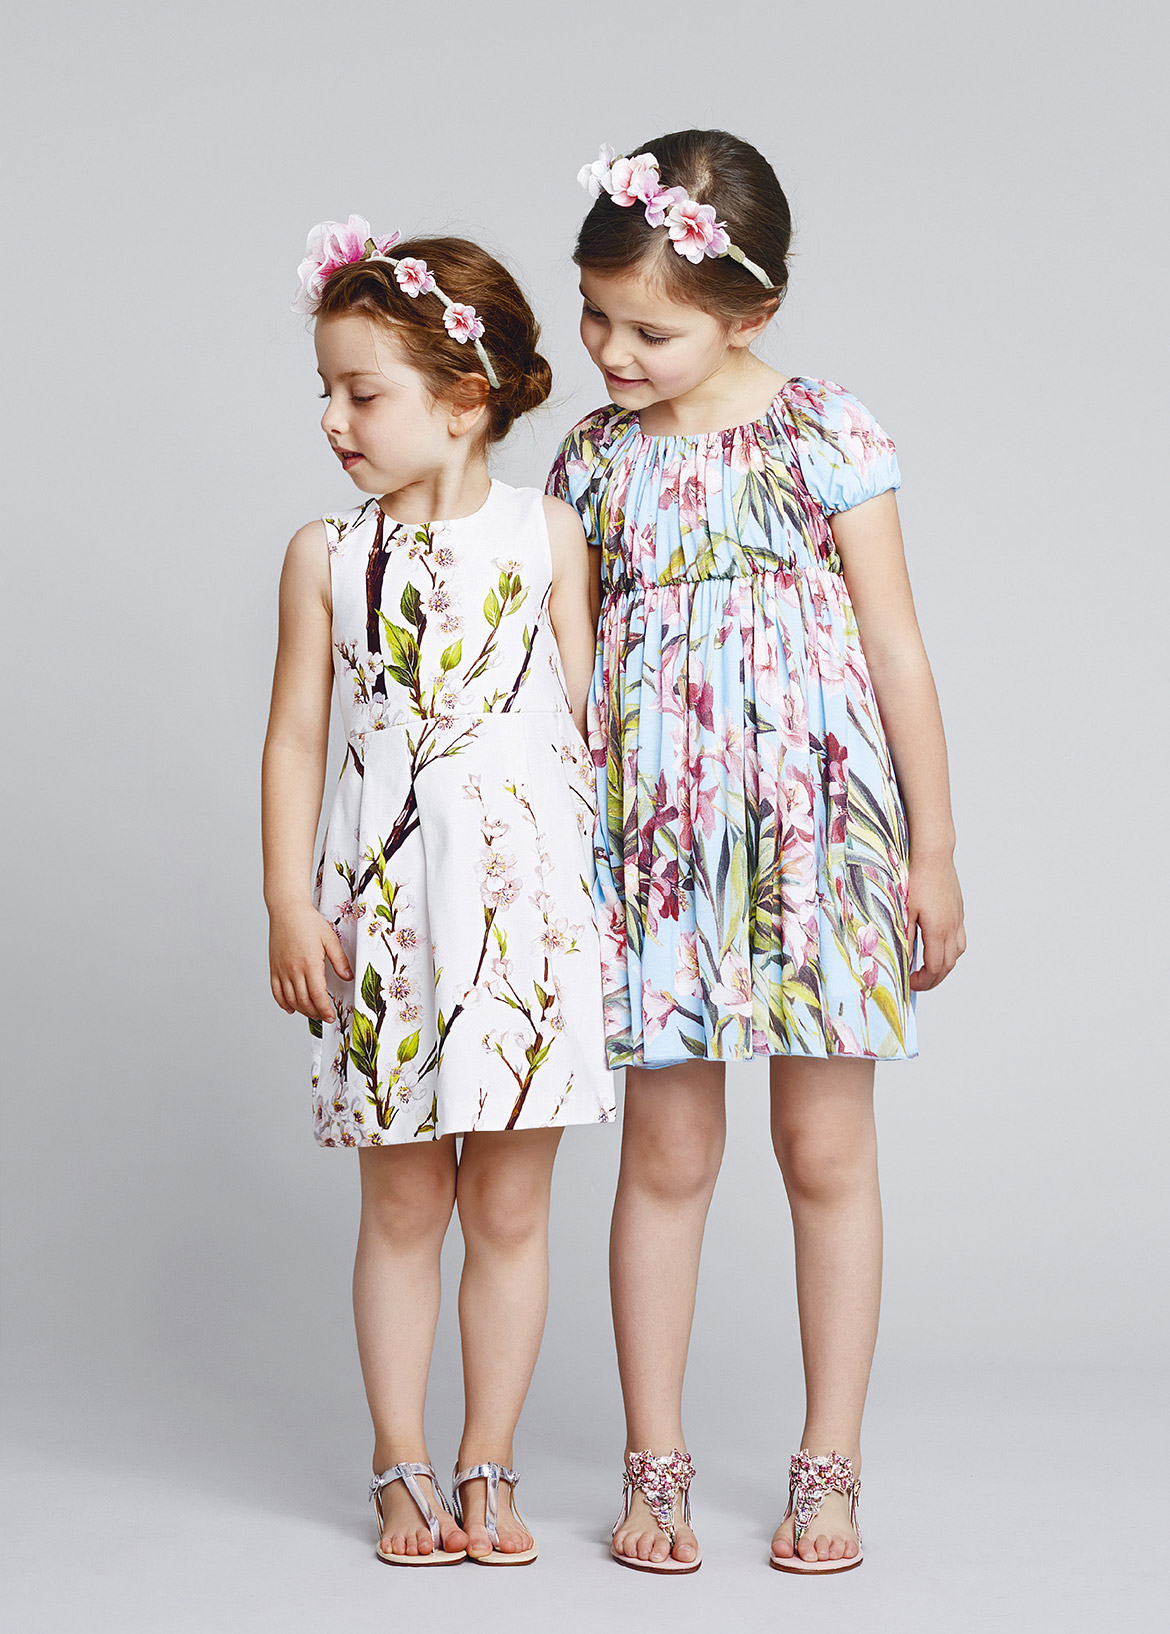 dolce-and-gabbana-ss-2014-child-collection (19)